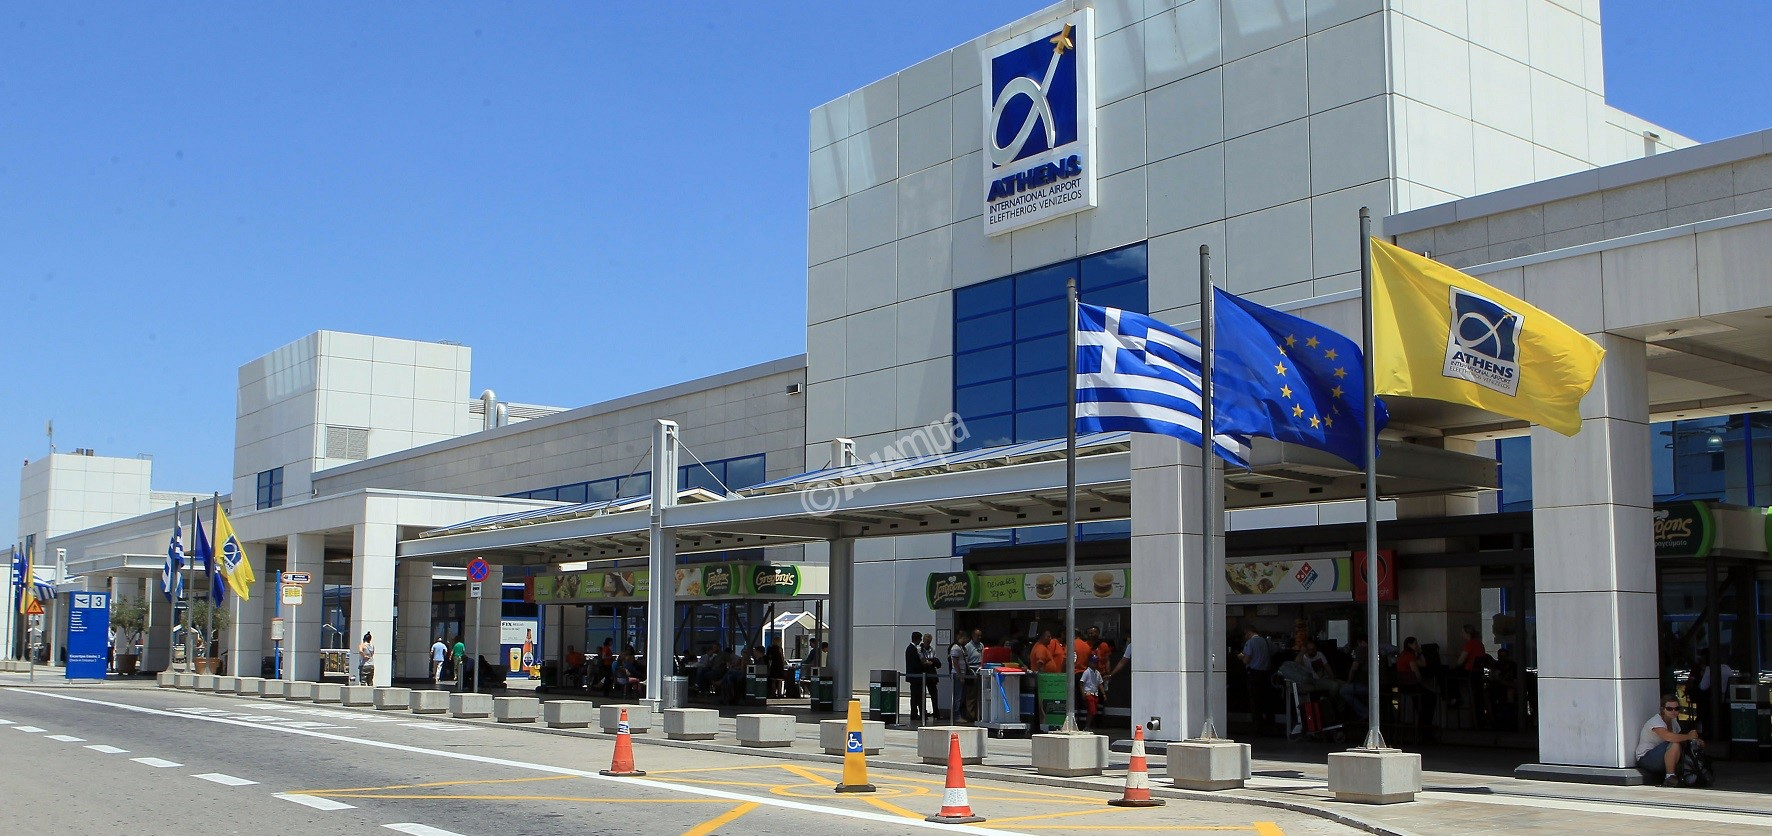 step by driving directions with Athens Airport on 2010 05 01 archive moreover In Next Gen Gps Navigation Systems Feel Not Hear Driving Directions as well Apple Watch How To Use Maps in addition Ribadesella Village also Problem.